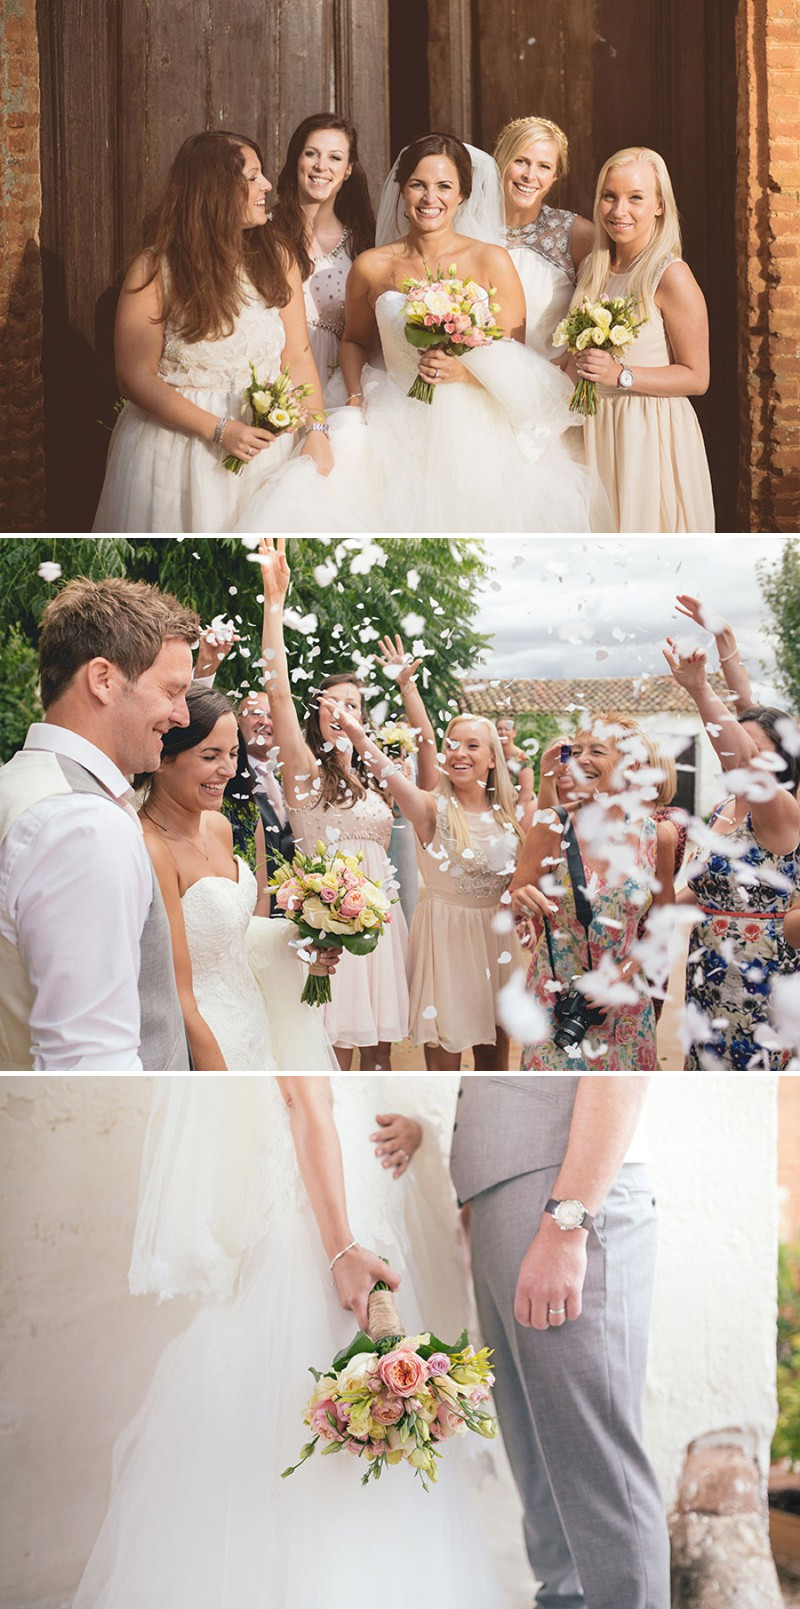 A Spanish Destination Wedding At Cortijo del Marques In Granada With A Emma Victoria Payne Wedding Dress Photographed By Joseph Hall Photography._0006